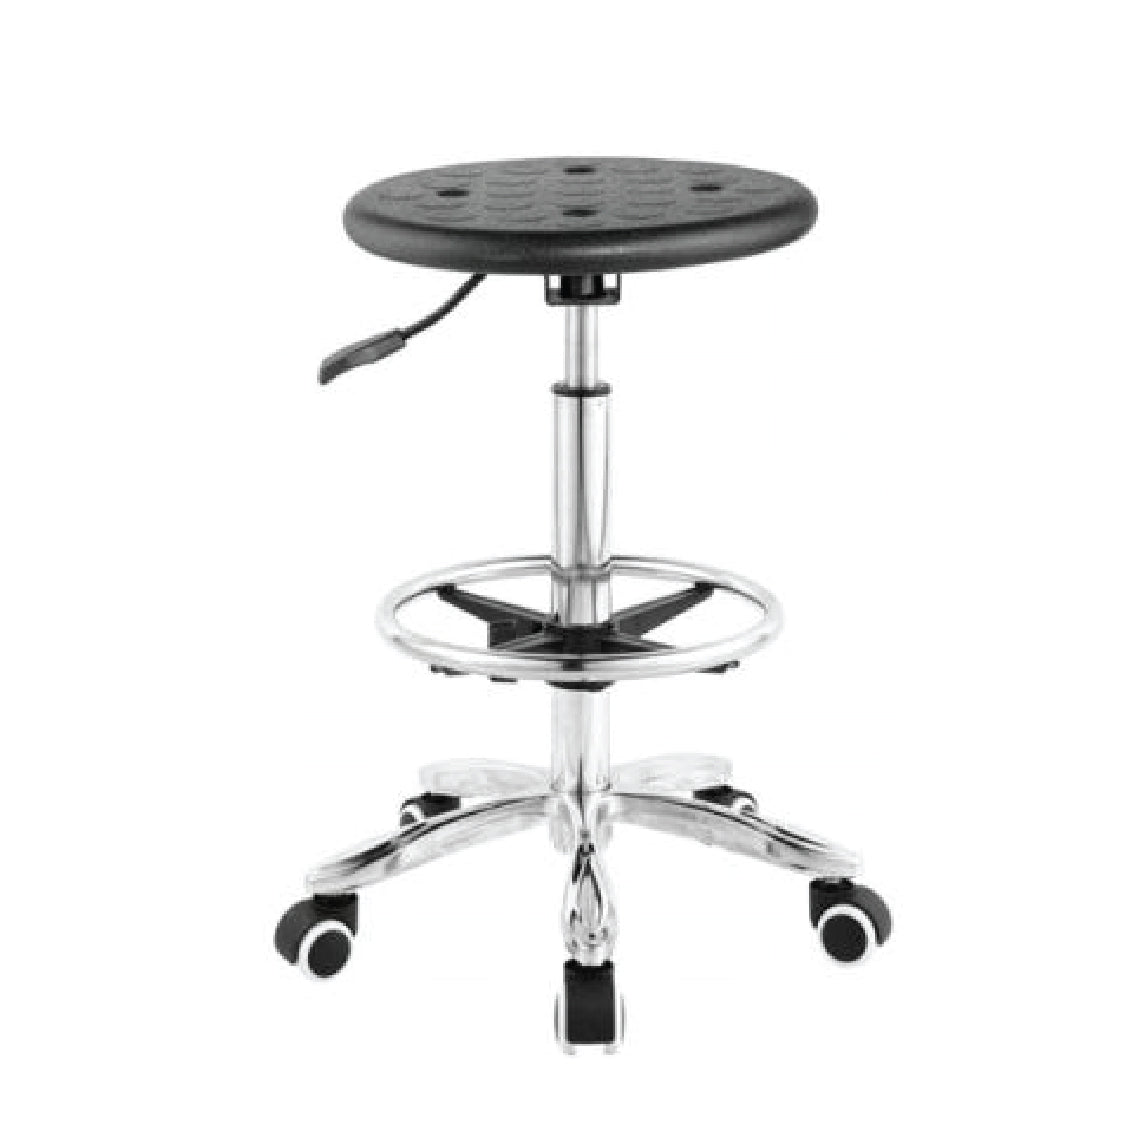 David Physician Stool